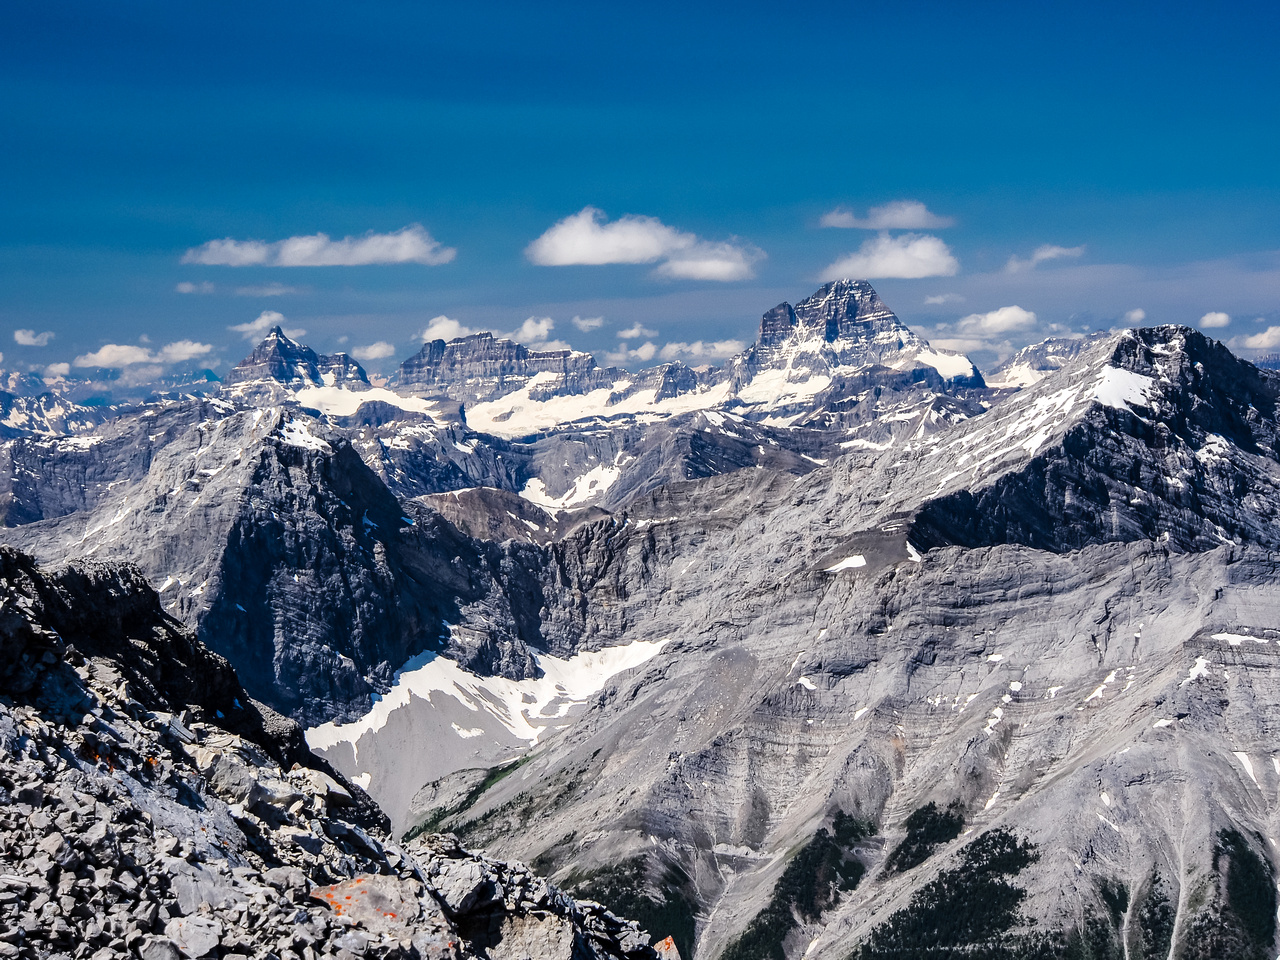 Nestor and Old Goat in the fg, Aye, Eon and the mighty Mount Assiniboine beyond.